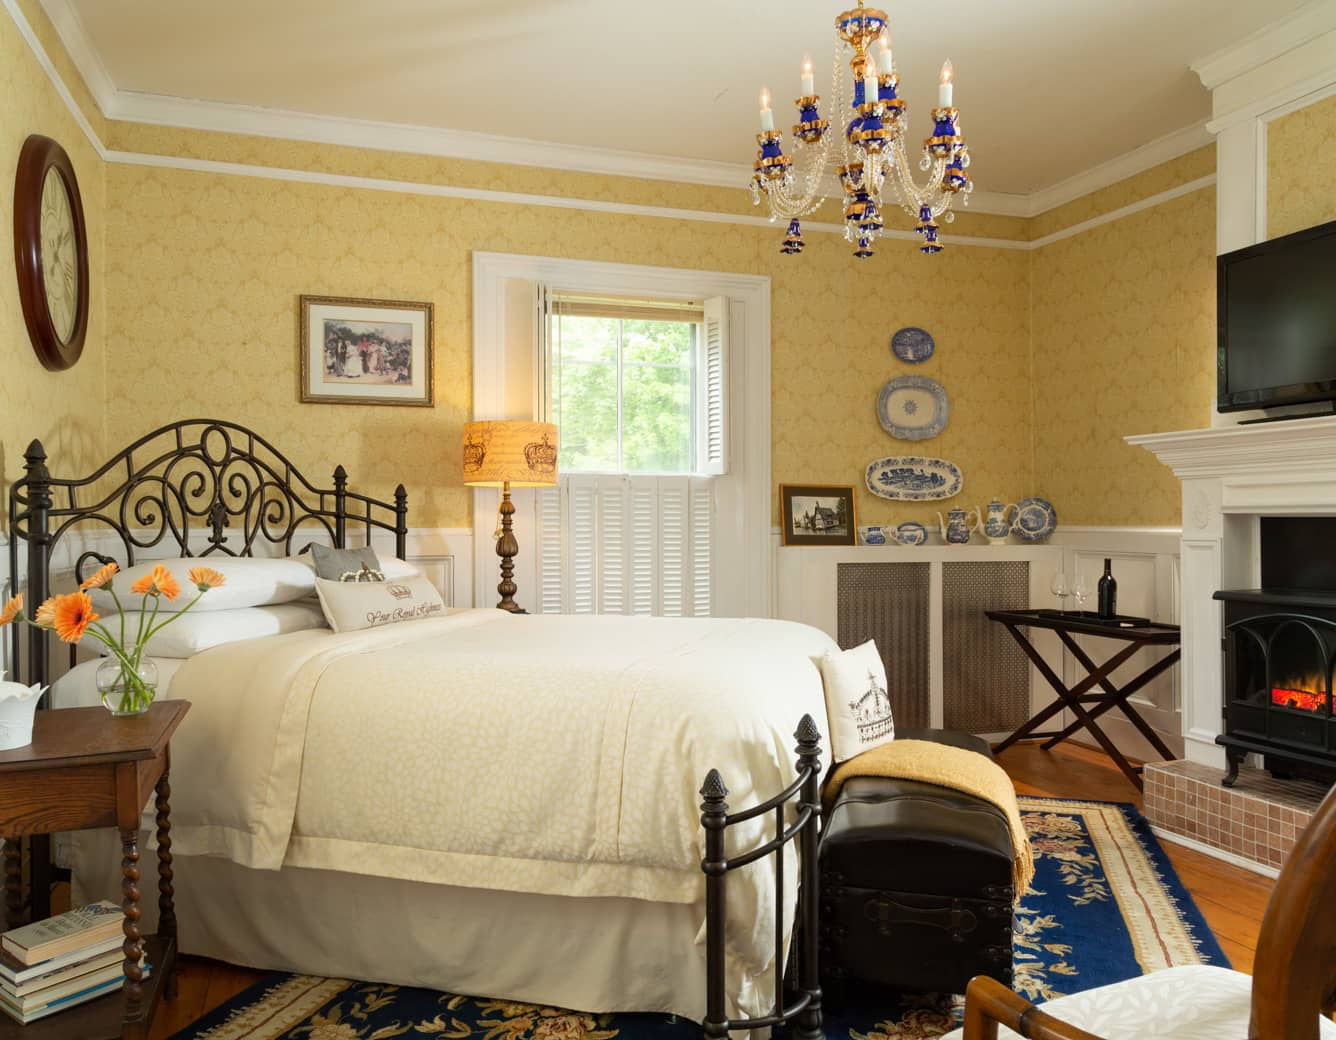 Queen bed in a room with a blue rug, hardwood floors, and fireplace